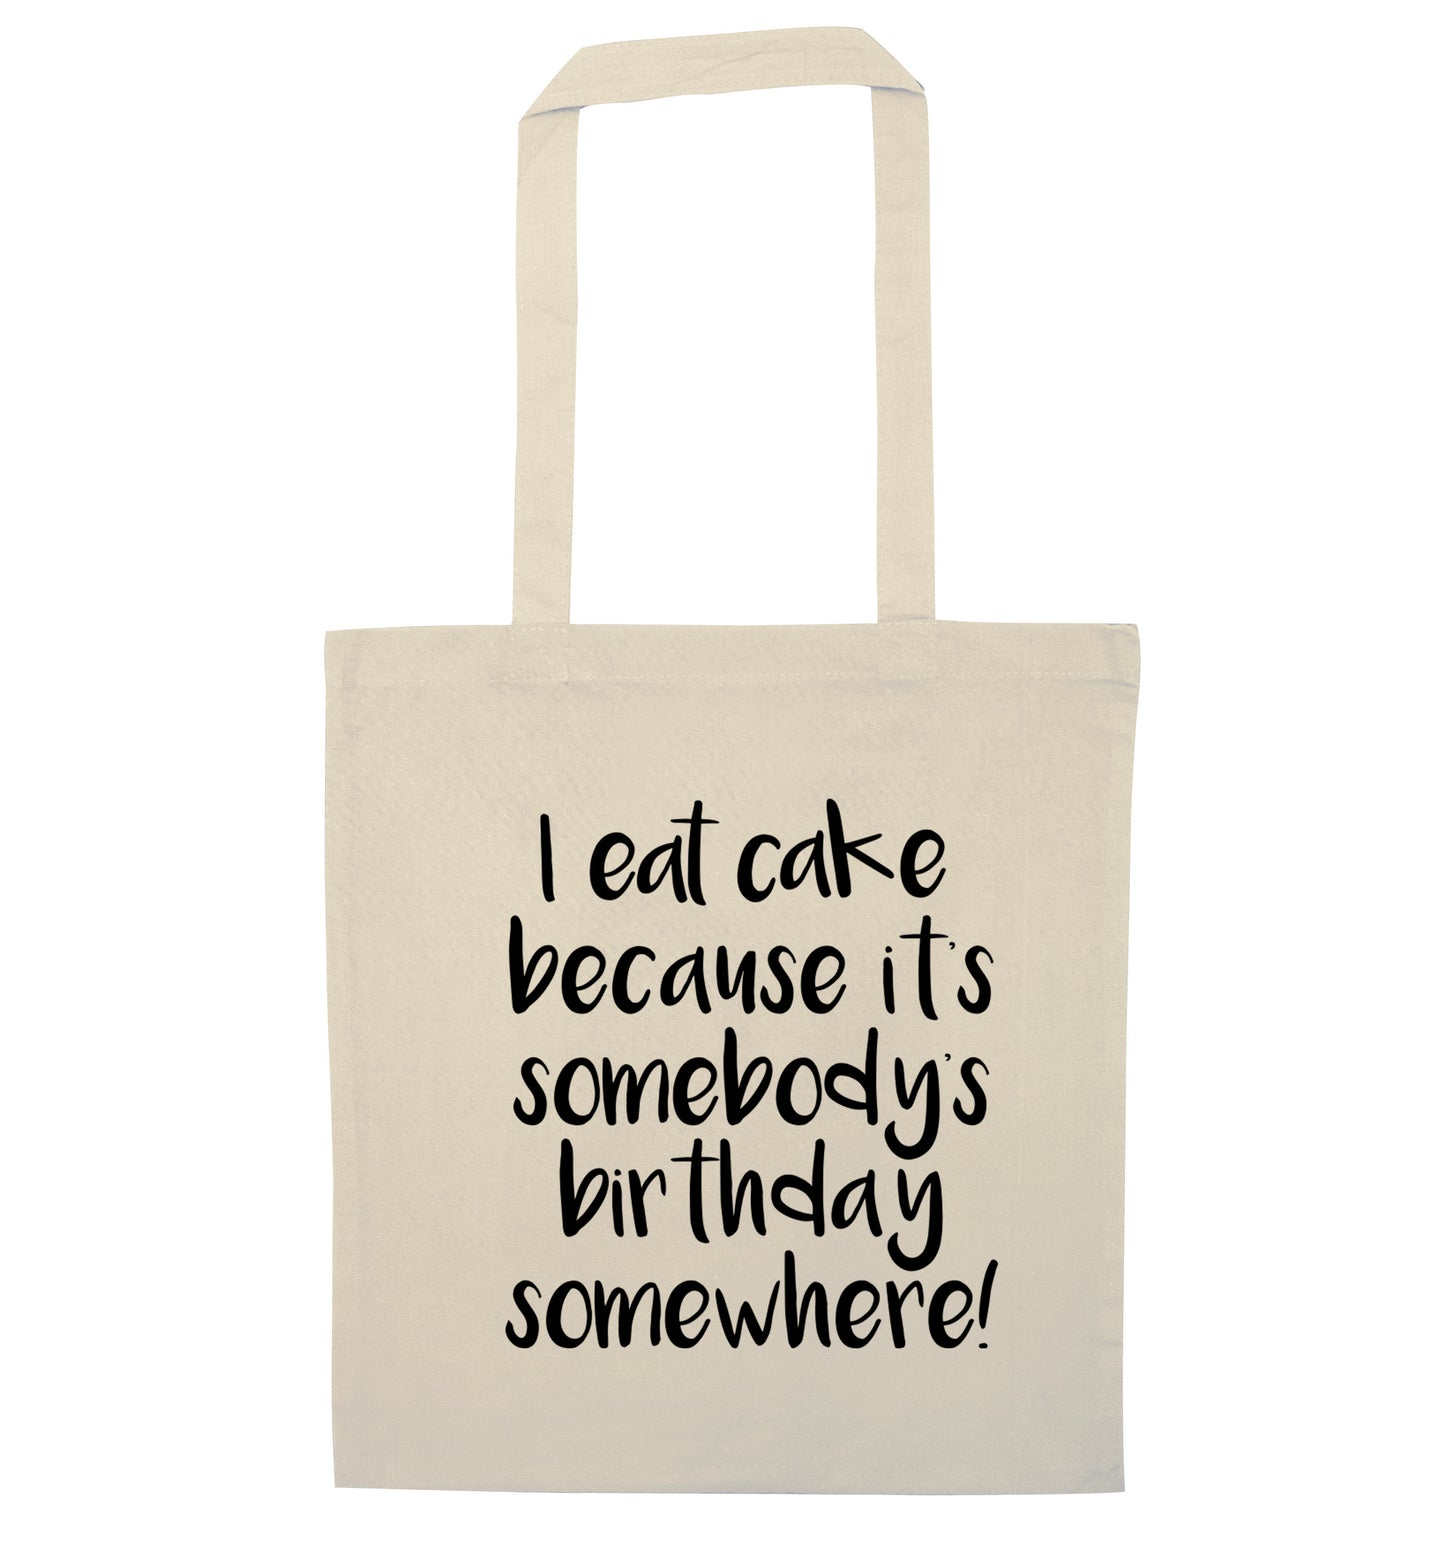 I eat cake because it's somebody's birthday somewhere! natural tote bag